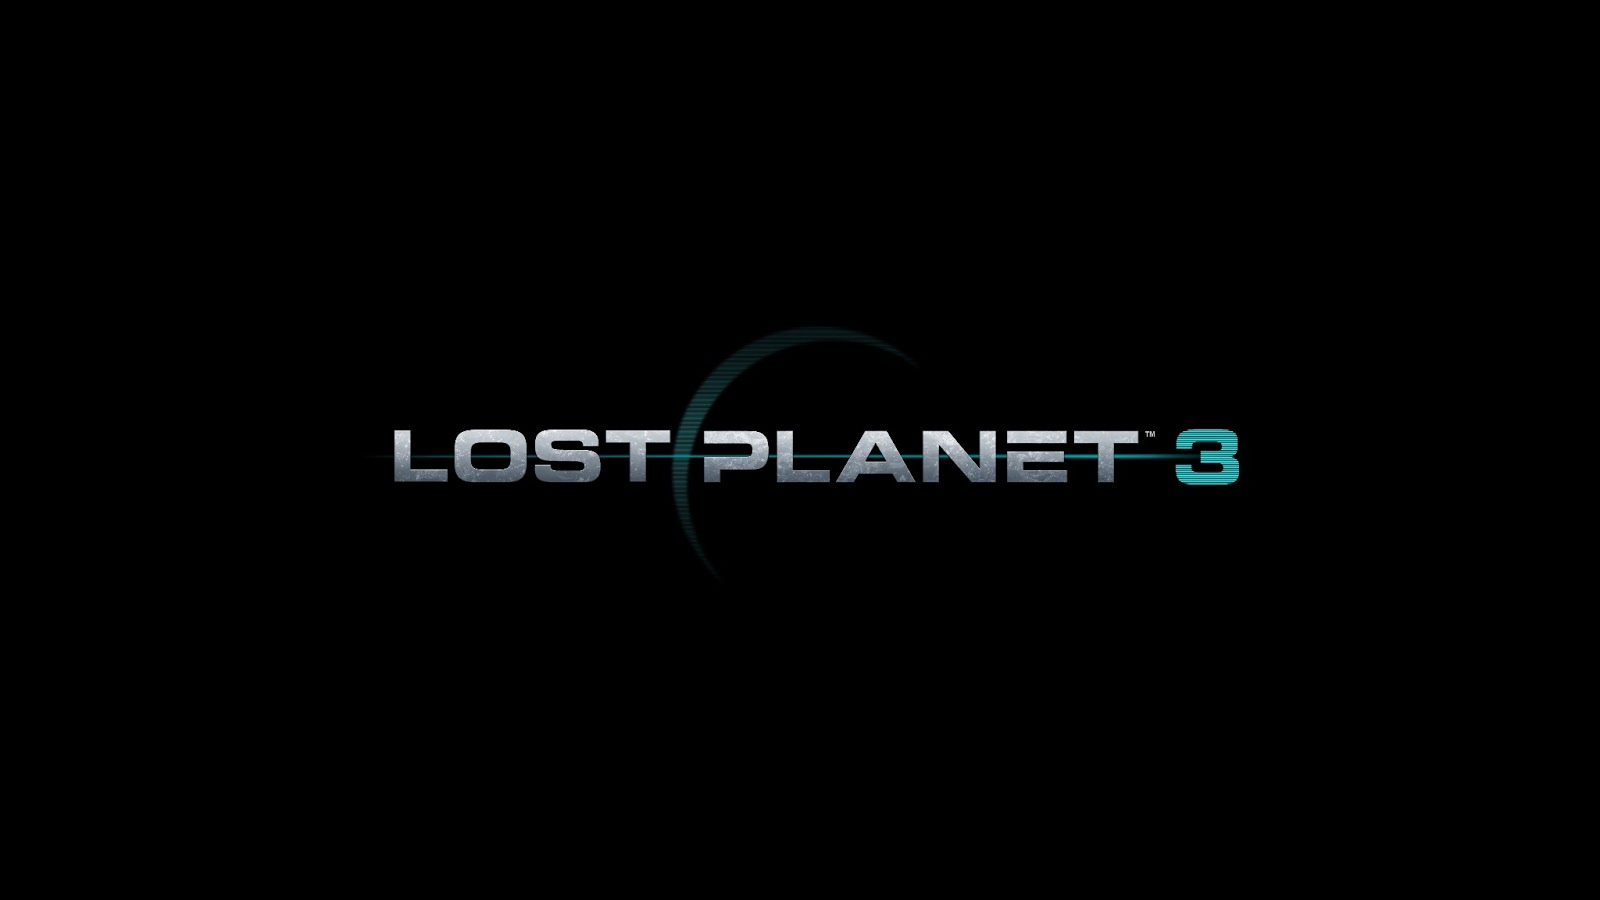 Lost Planet 3 Review - We Know Gamers